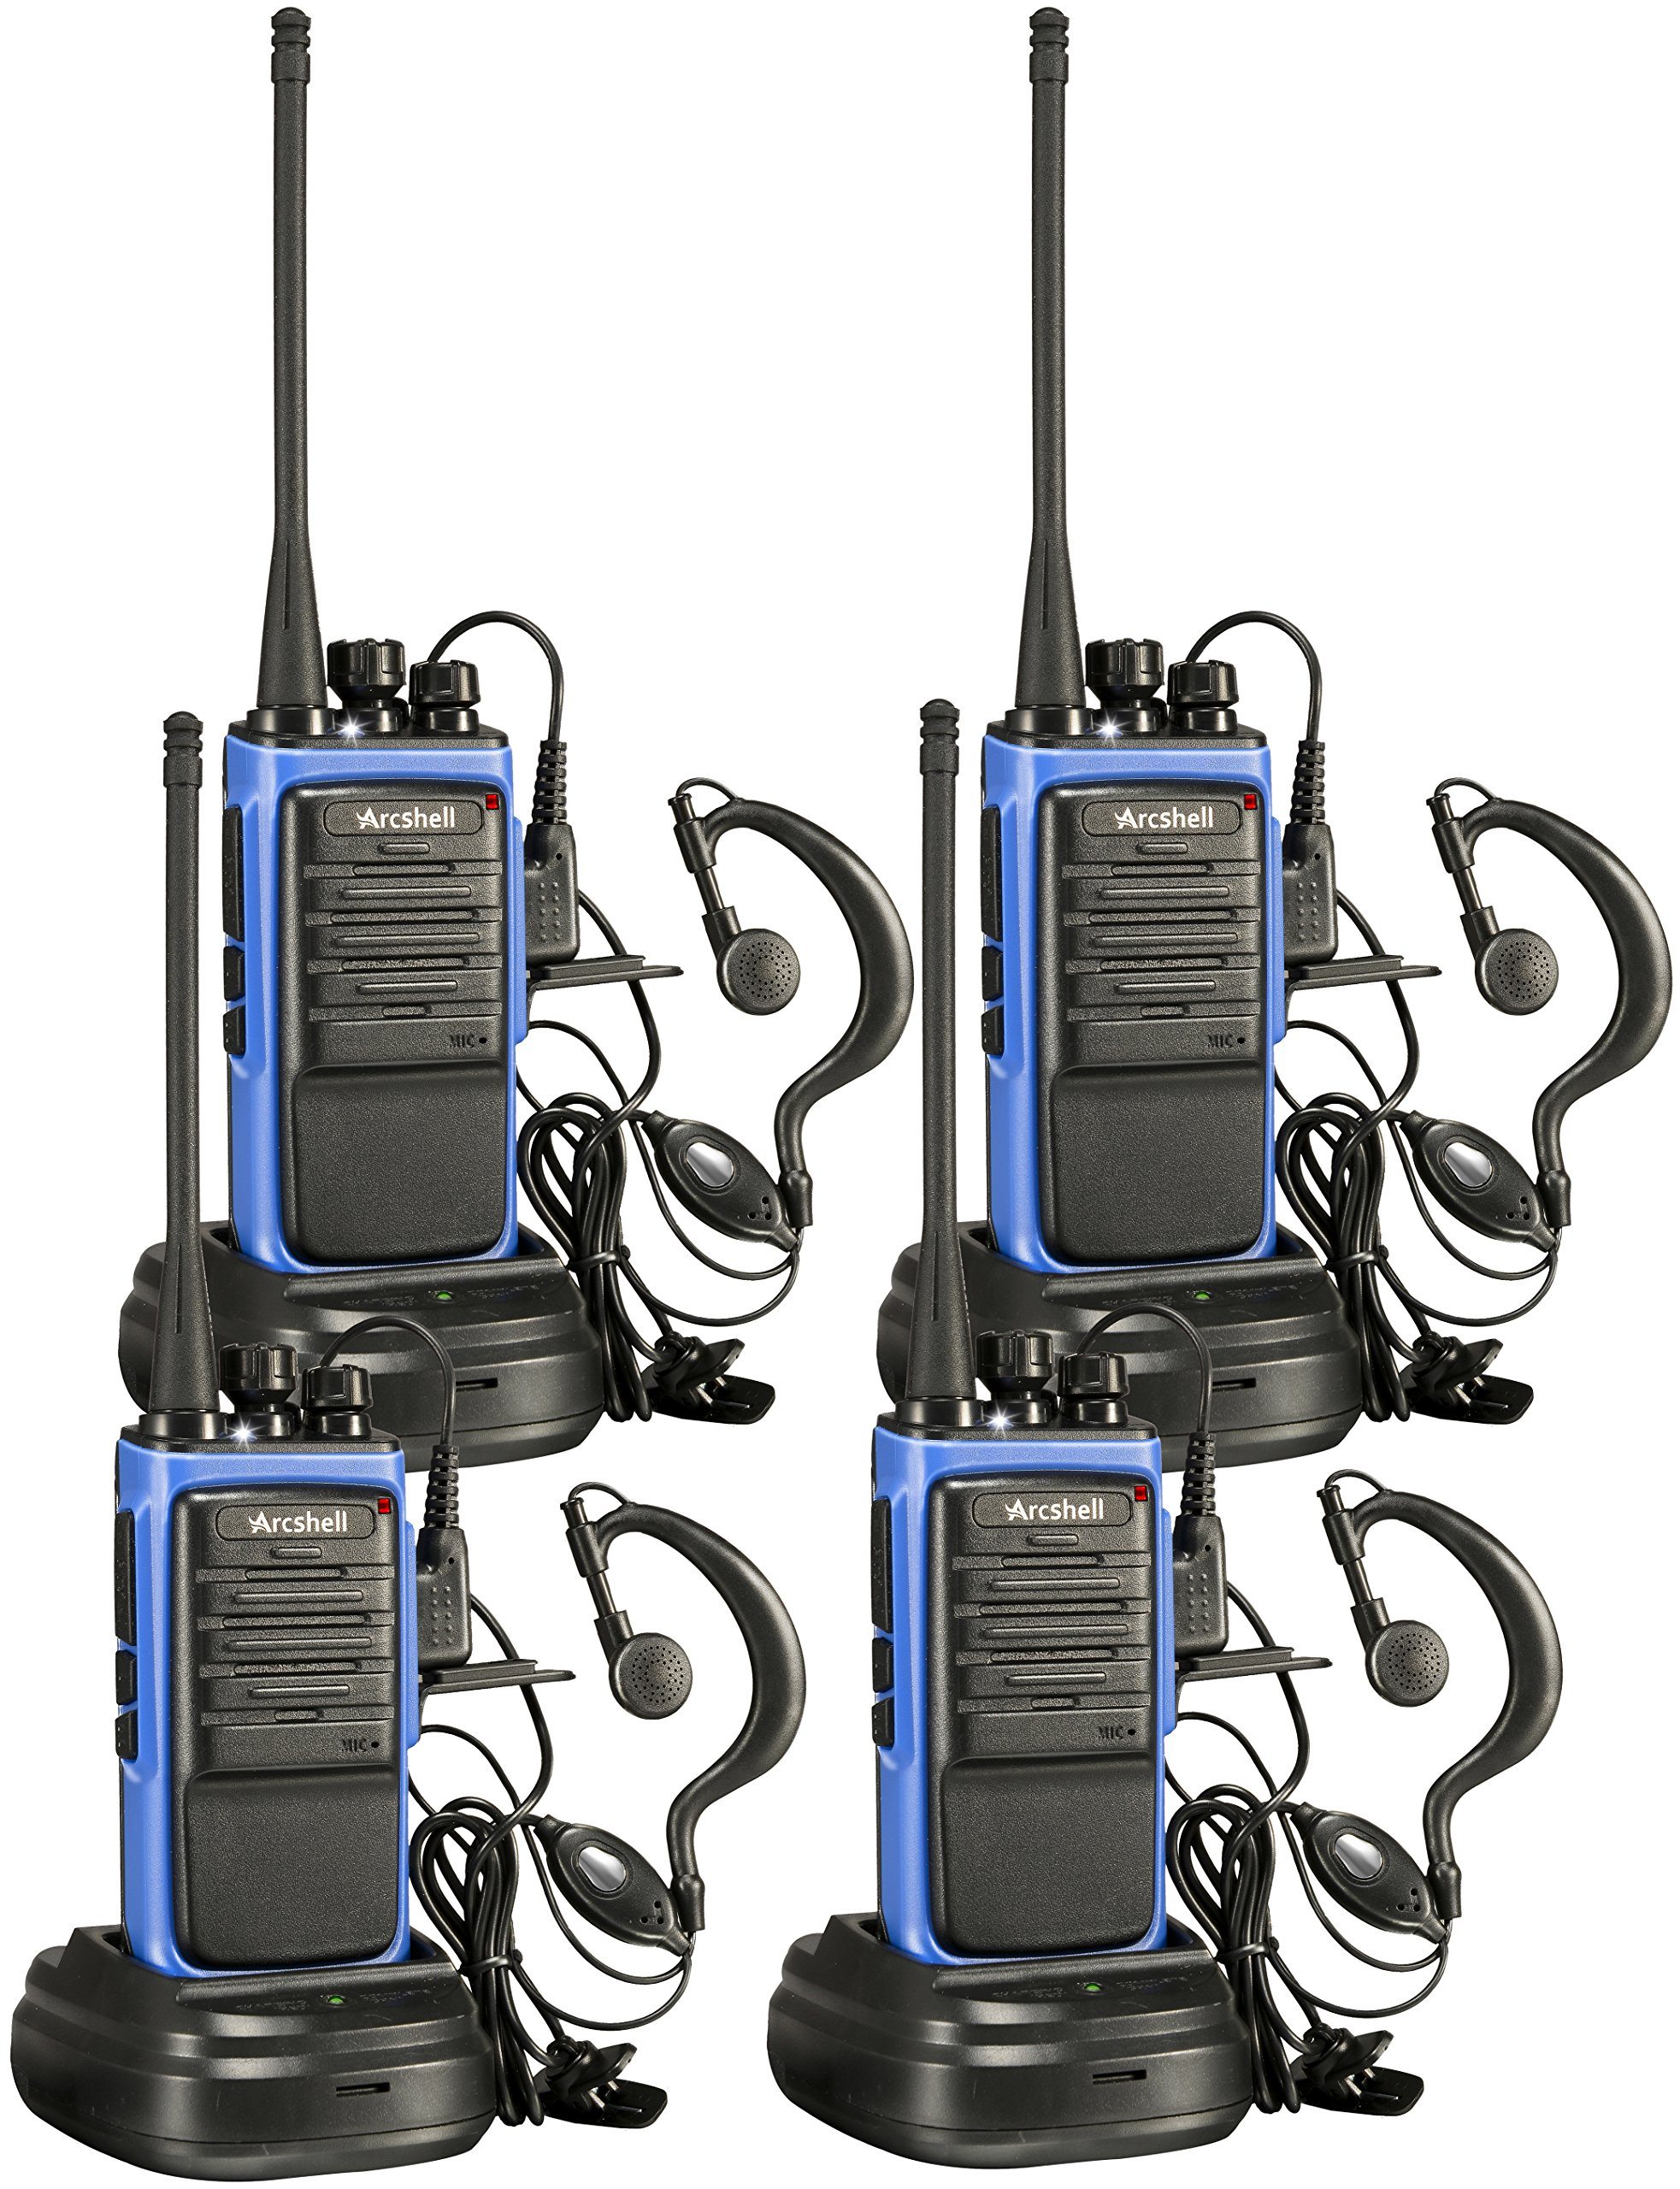 Arcshell Rechargeable Long Range Two-Way Radios with Earpiece 4 Pack UHF 400-470Mhz Walkie Talkies Li-ion Battery and Charger Included by Arcshell